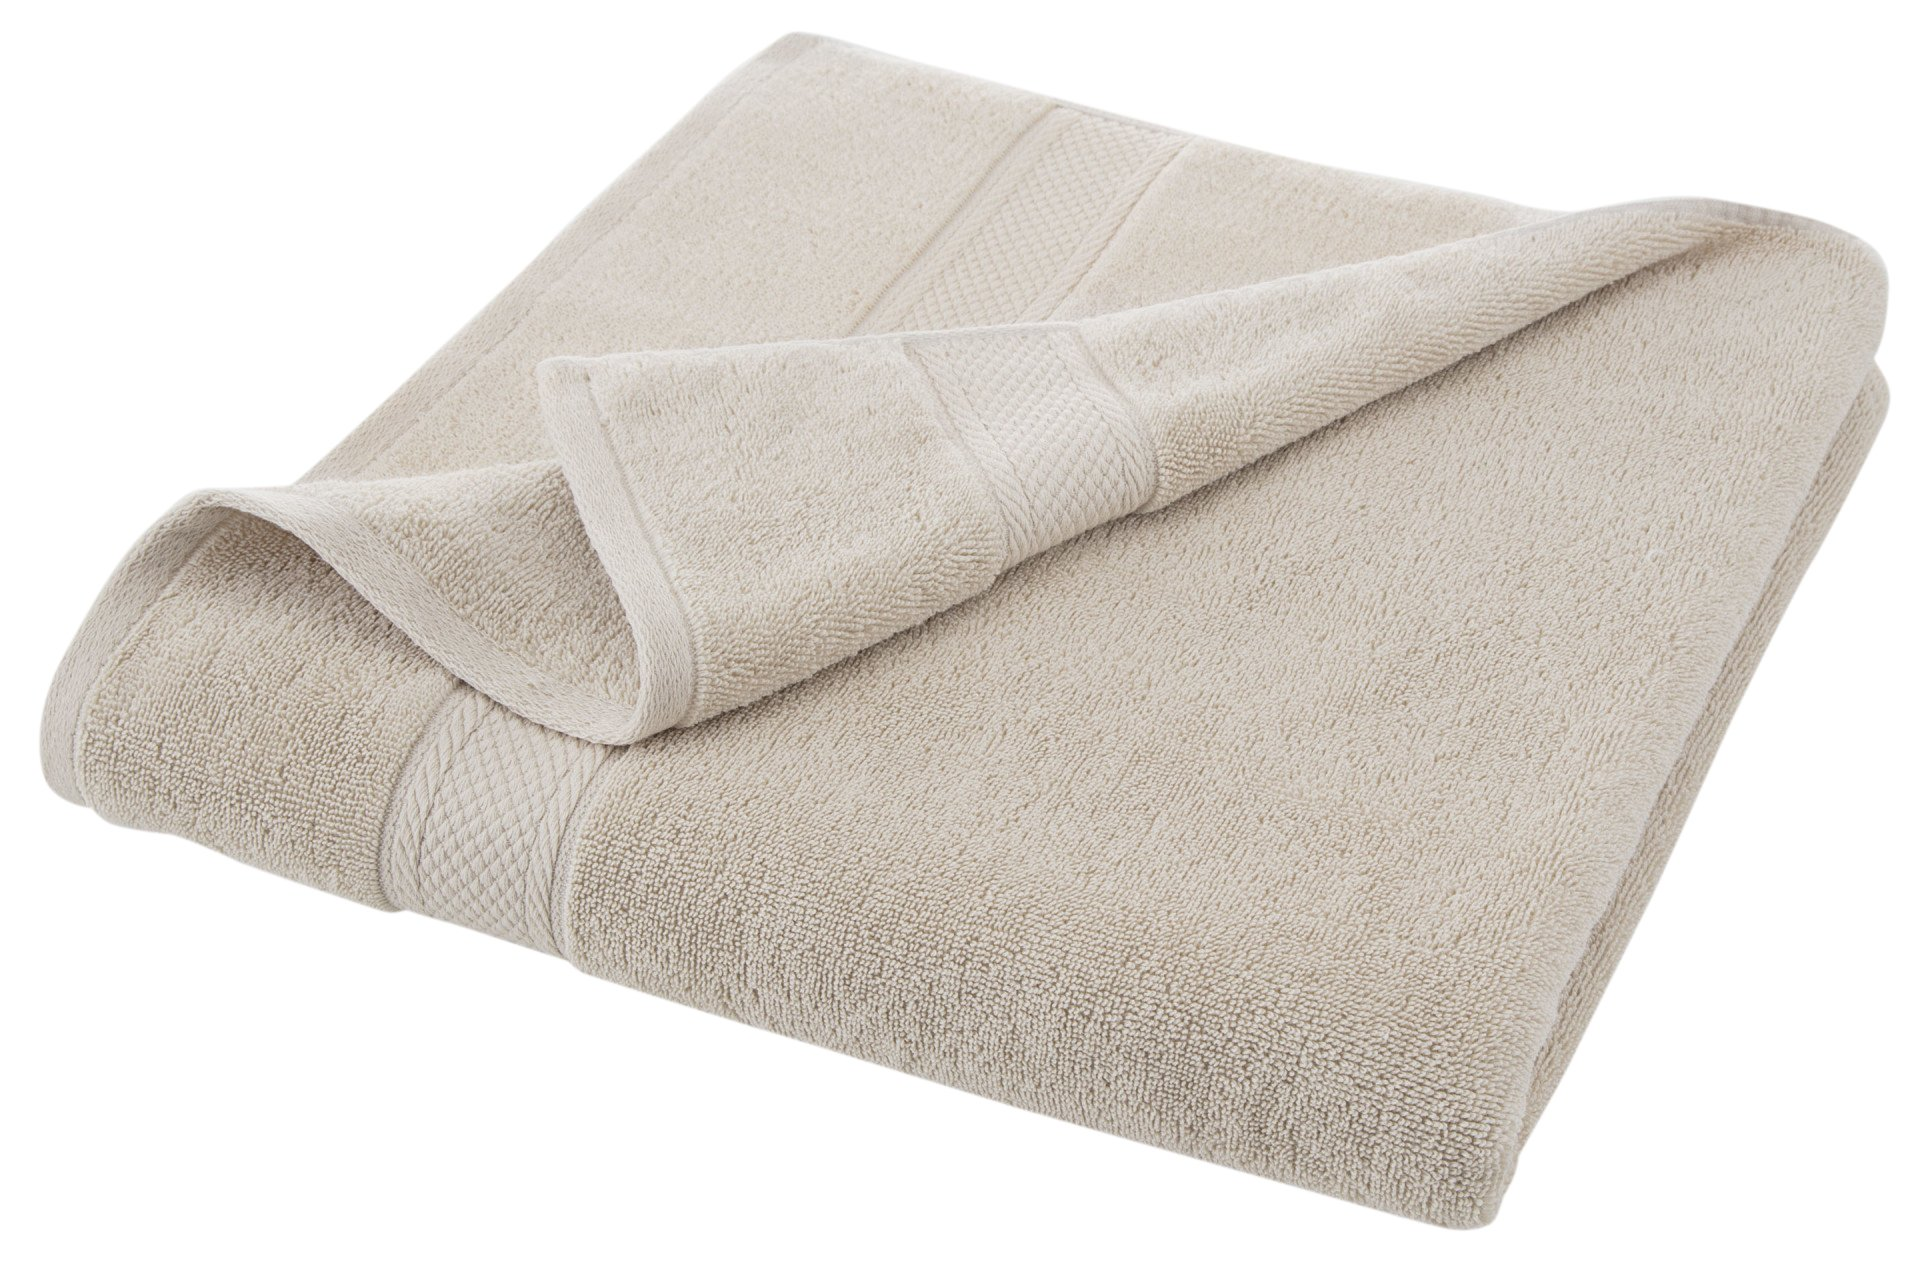 GRAND PATRICIAN SUITES BODY SHEET - Densely Woven 3 ply Loop Yarn, 100% Cotton, Thick, Plush, Ultra Absorbent - Luxury, Hotel, Bathroom - Machine Washable - Linen Beige